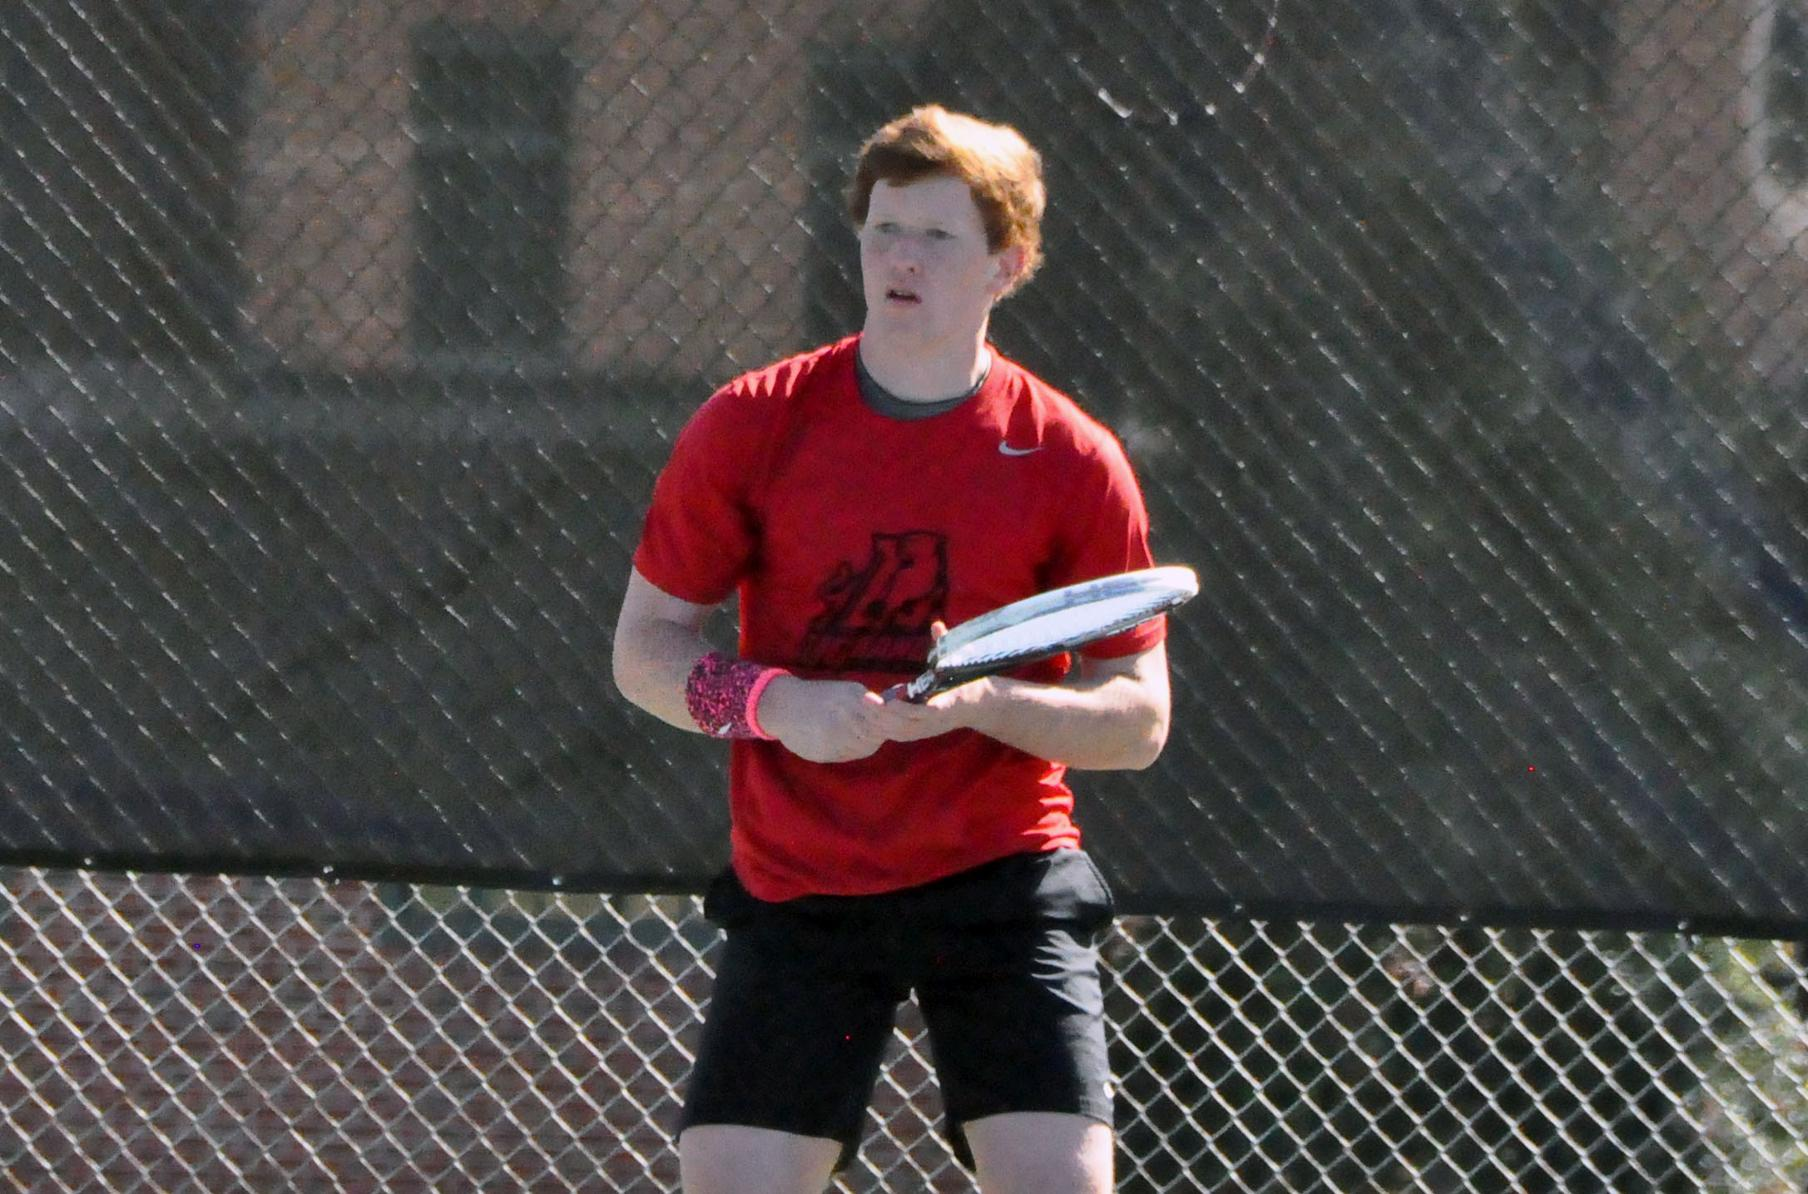 Men's Tennis: Panthers knock off defending NJCAA national champion Emory-Oxford